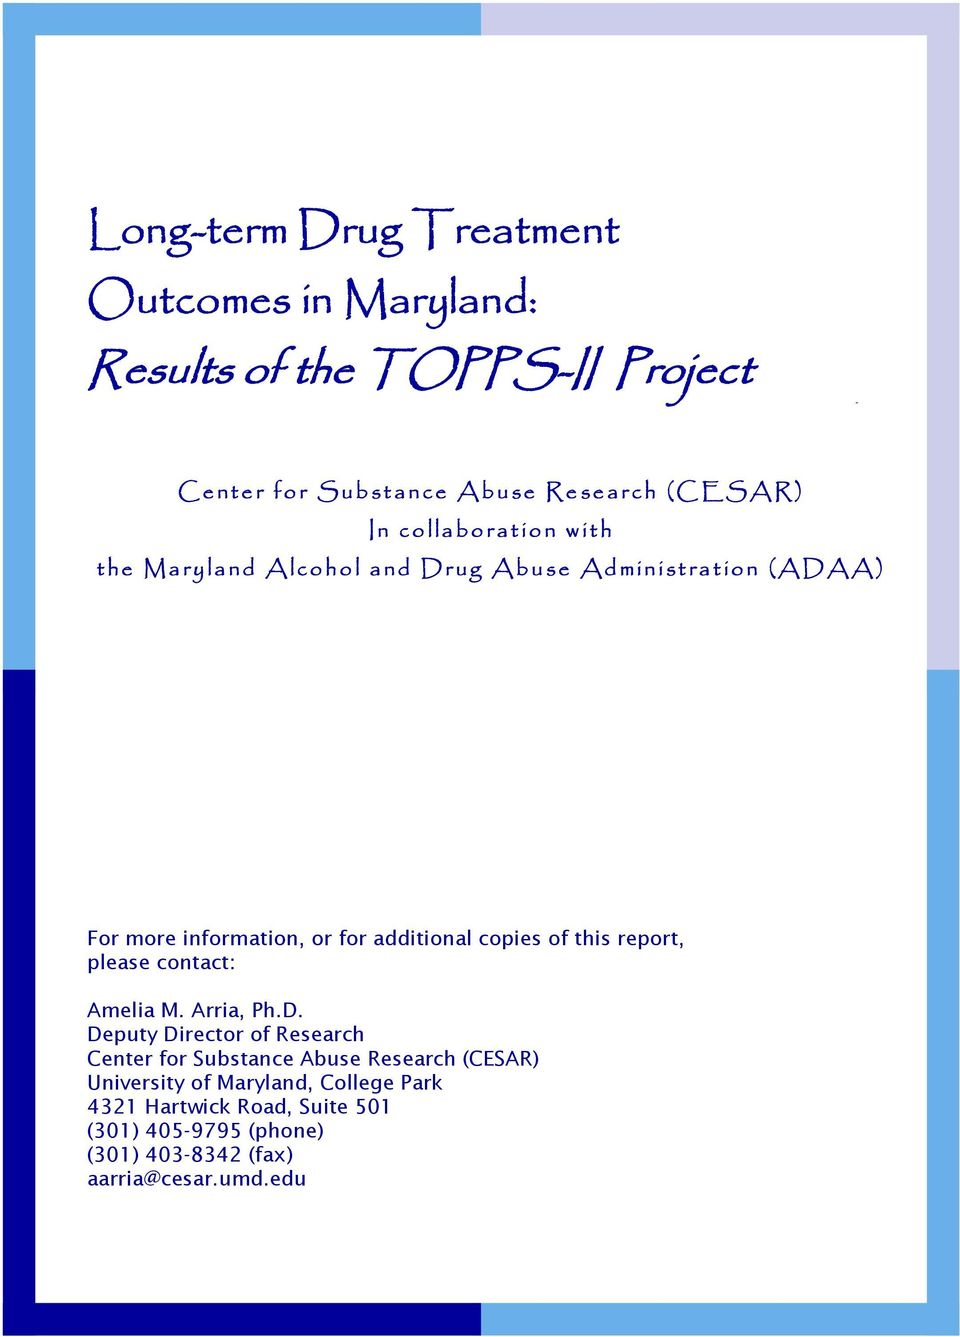 more information, or for additional copies of this report, please contact: Amelia M. Arria, Ph.D.